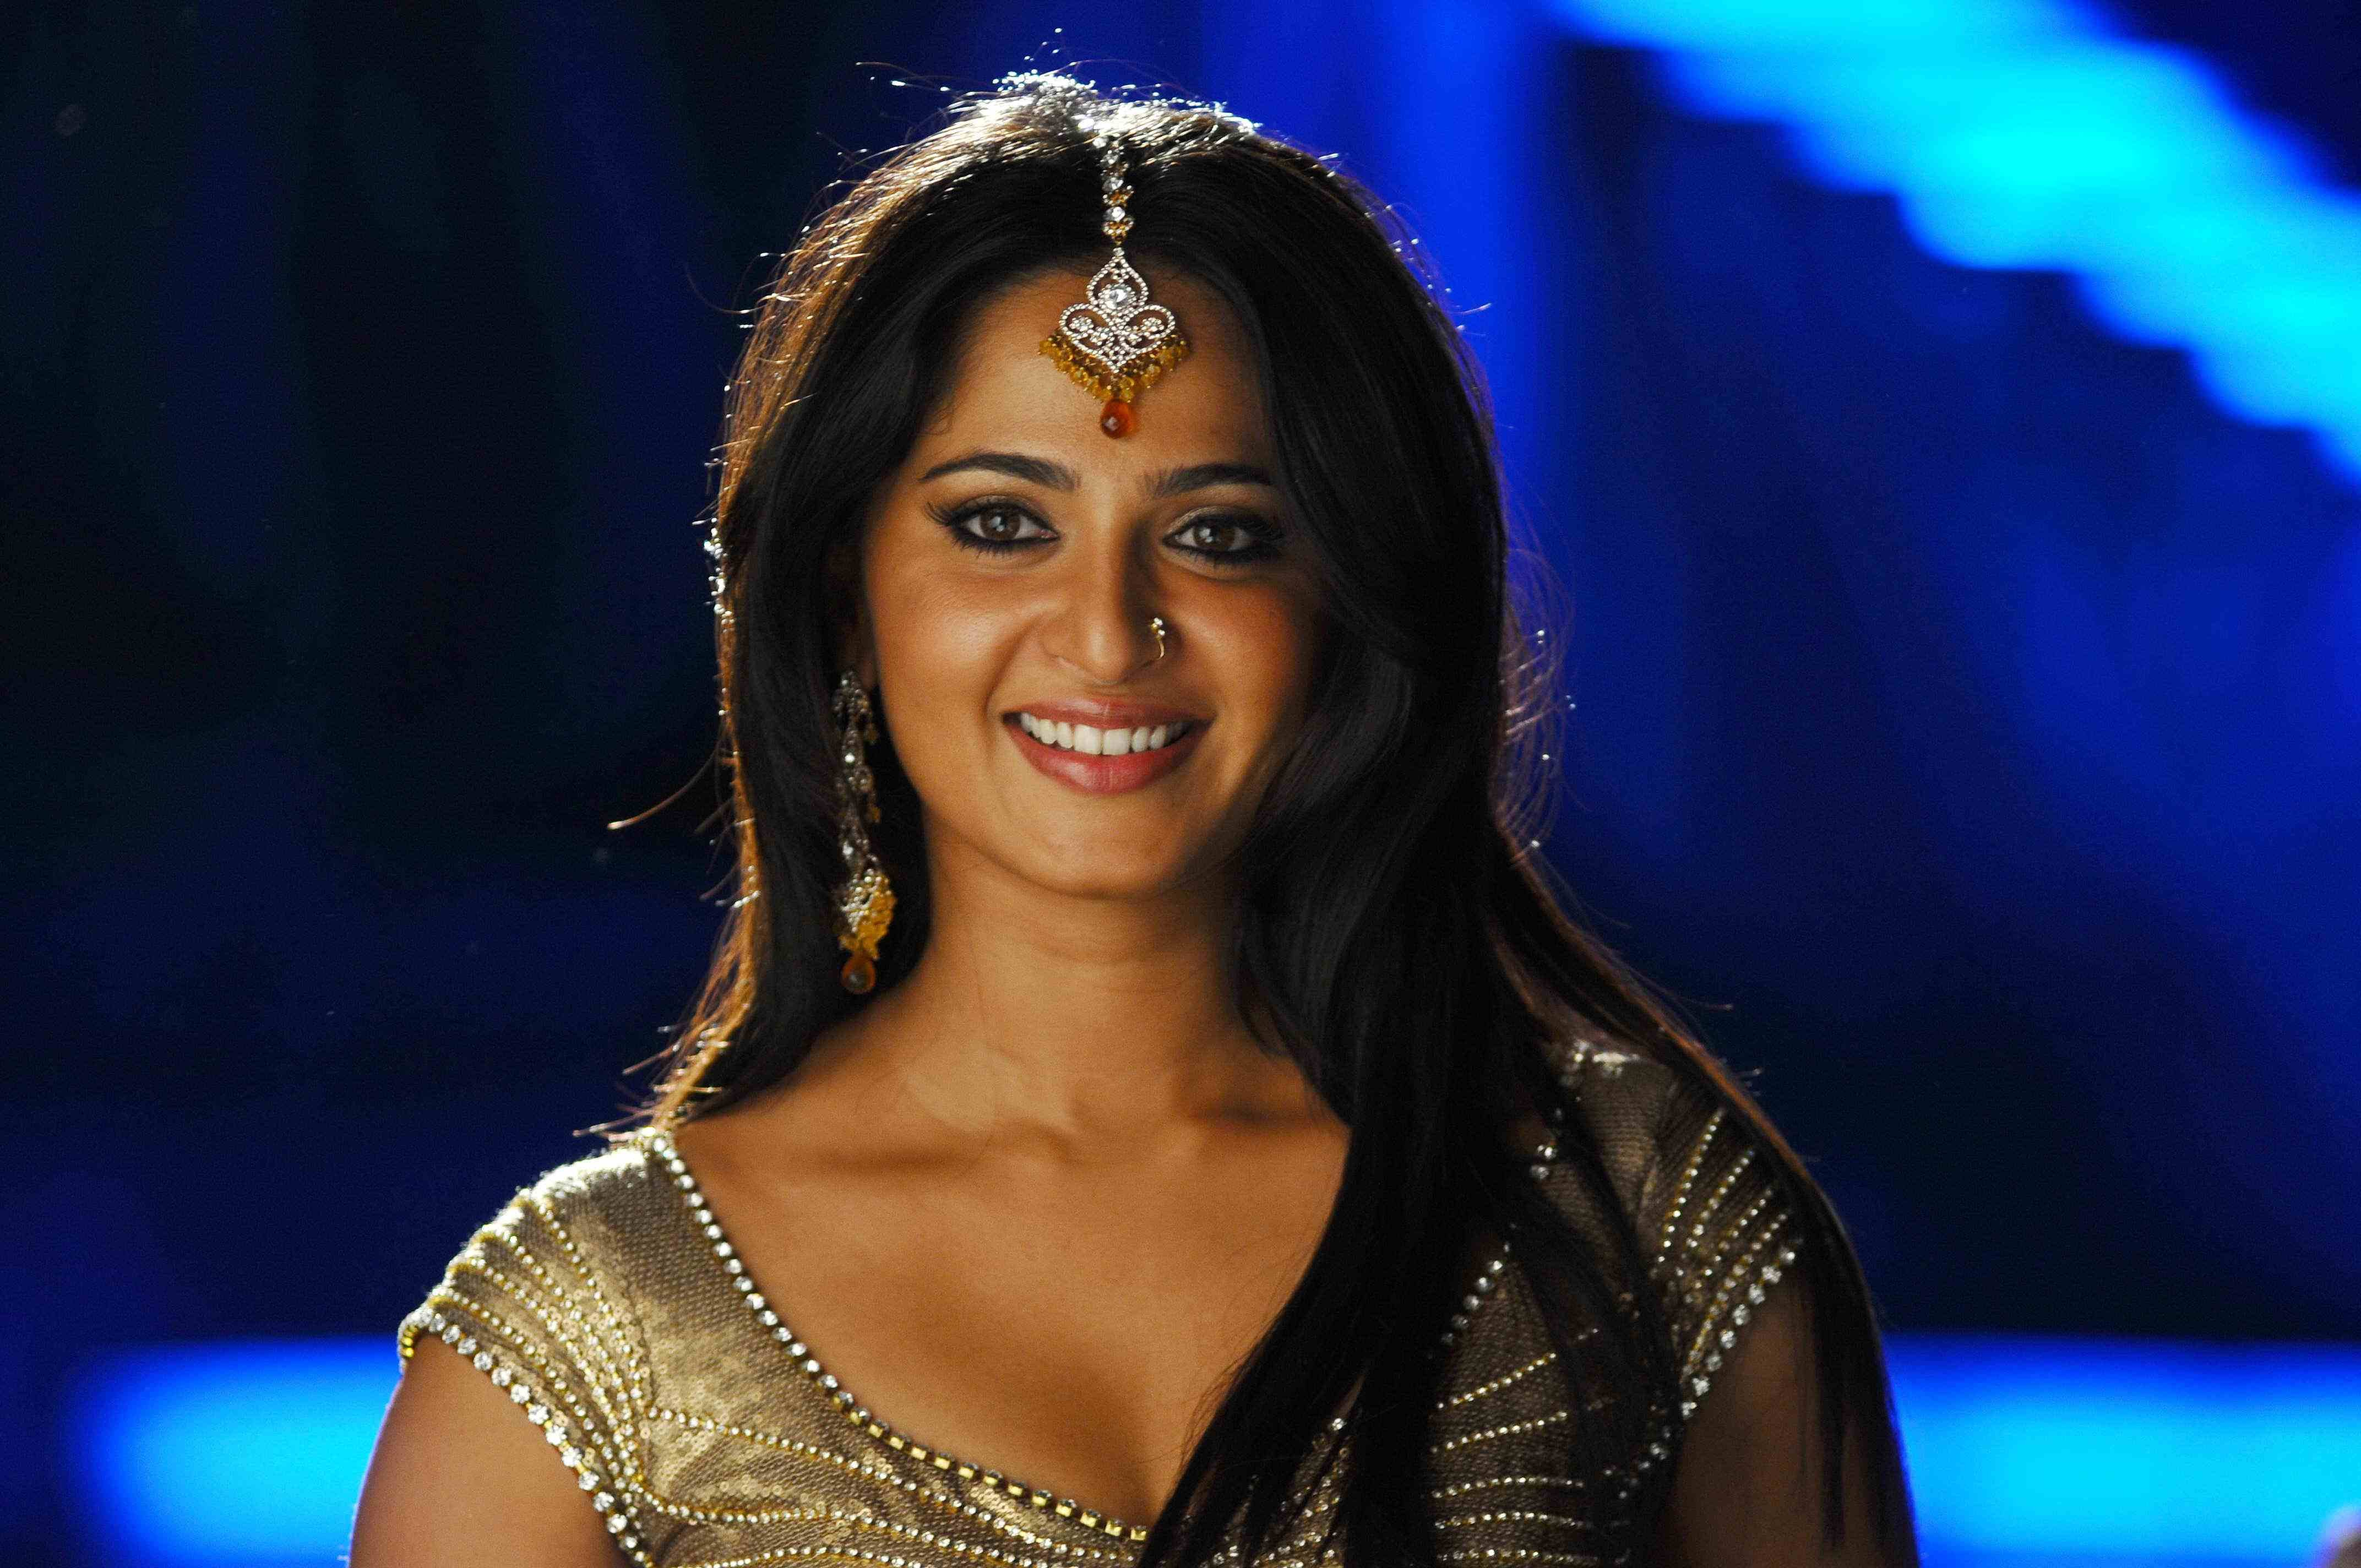 Anushka Wallpapers High Resolution And Quality Download